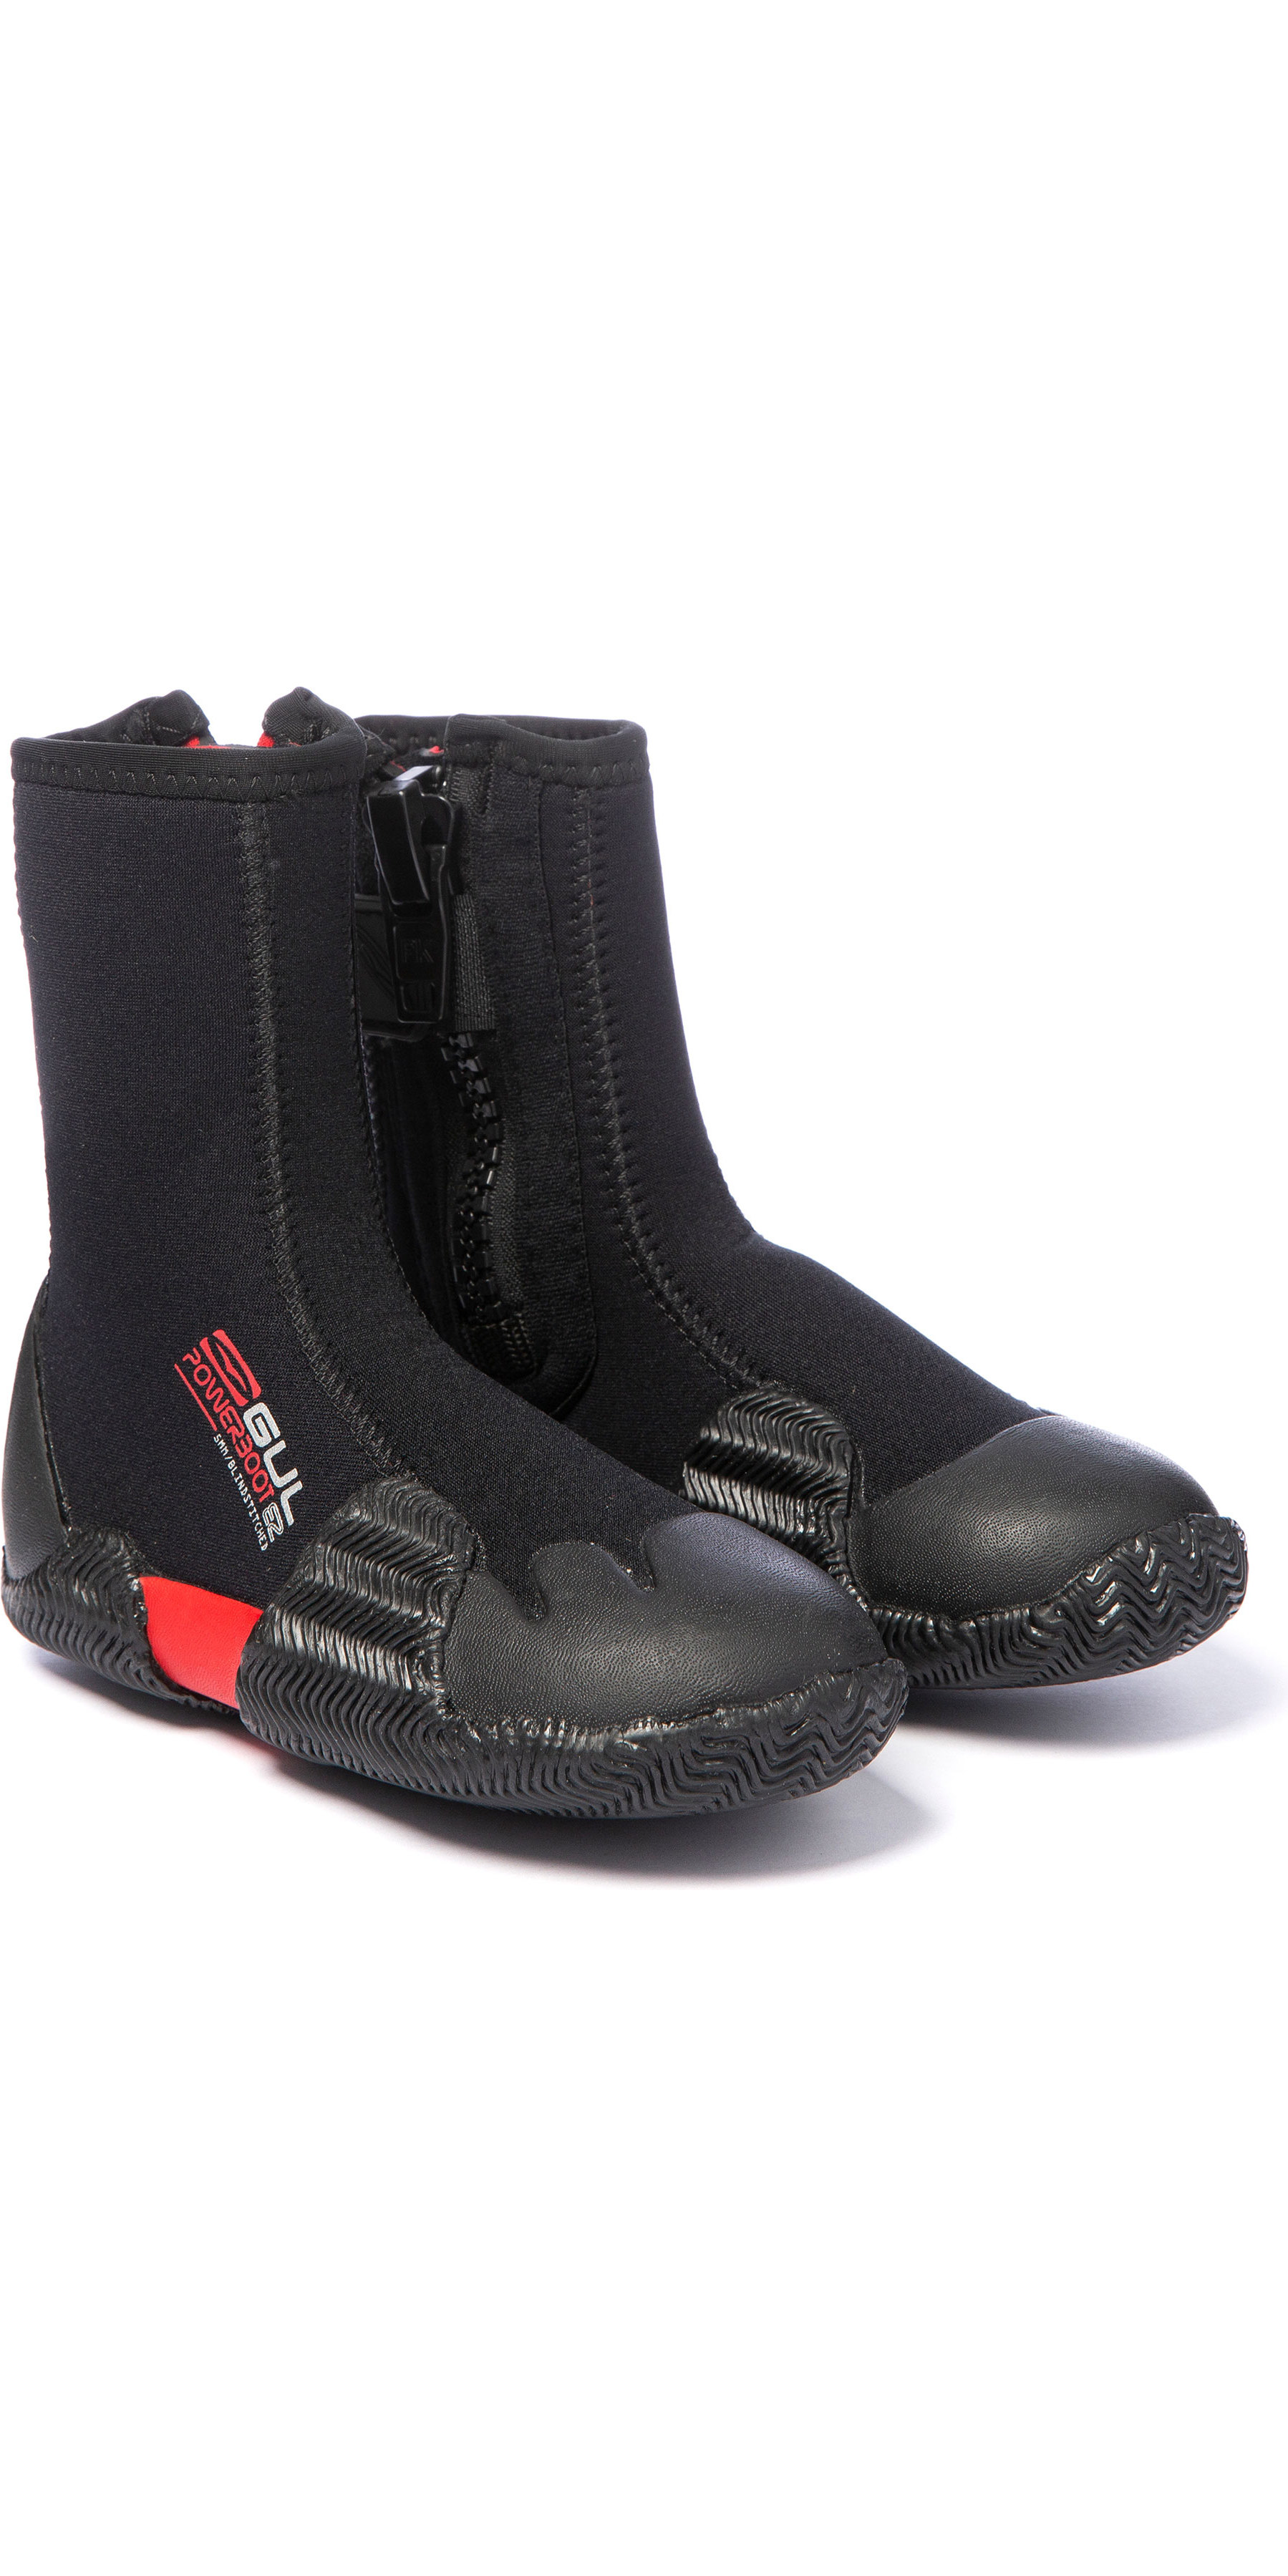 2019 Gul Power 5mm Round Toe Zipped Boots BO1306-B2 - Black